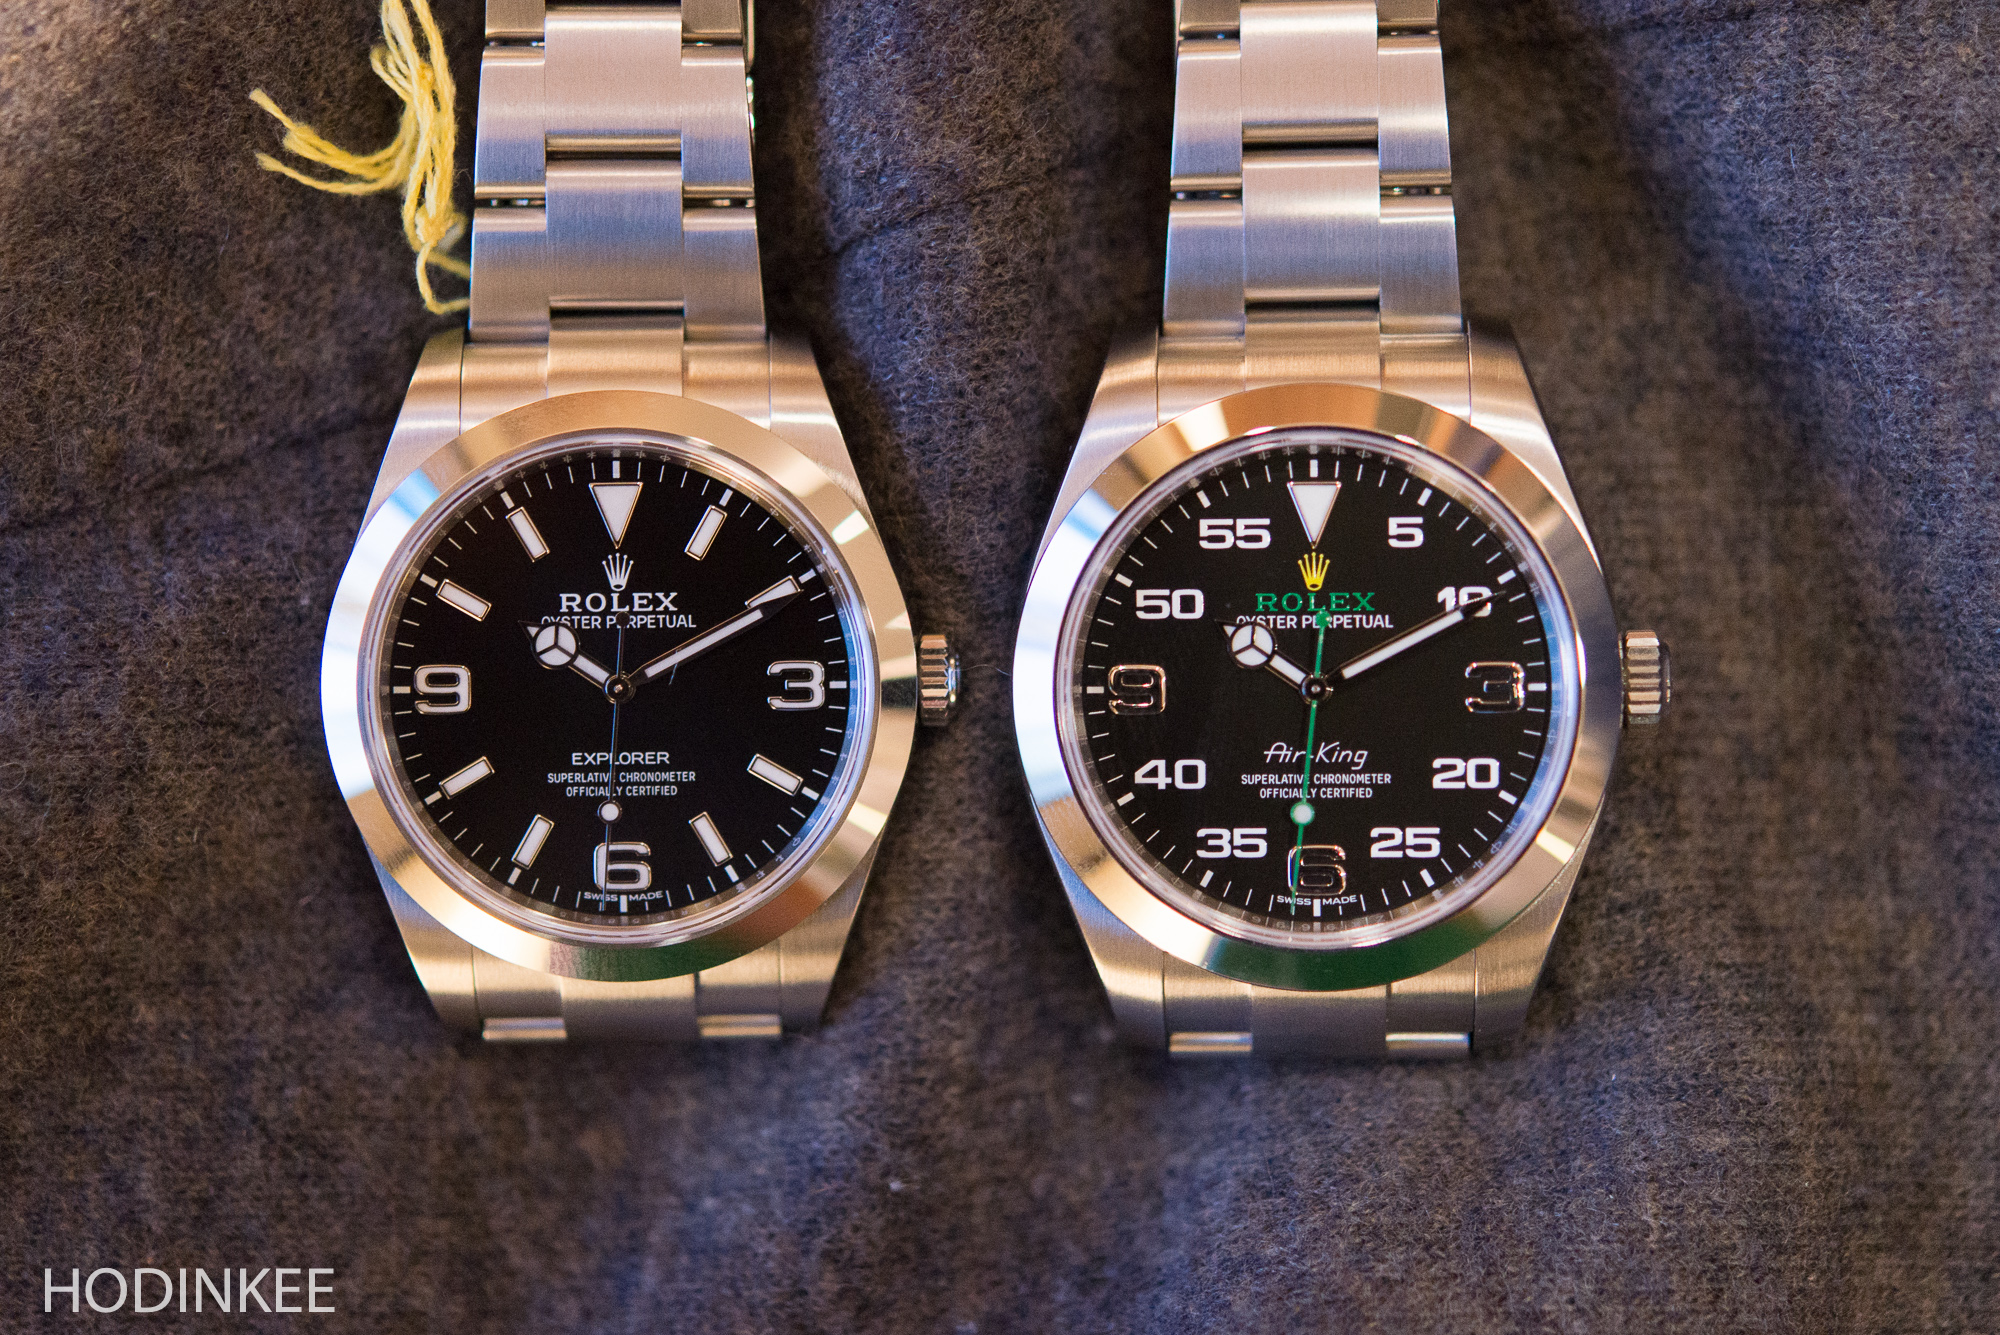 Rolex Explorer Hands On Some Quick Thoughts On The New Rolex Air King Versus The